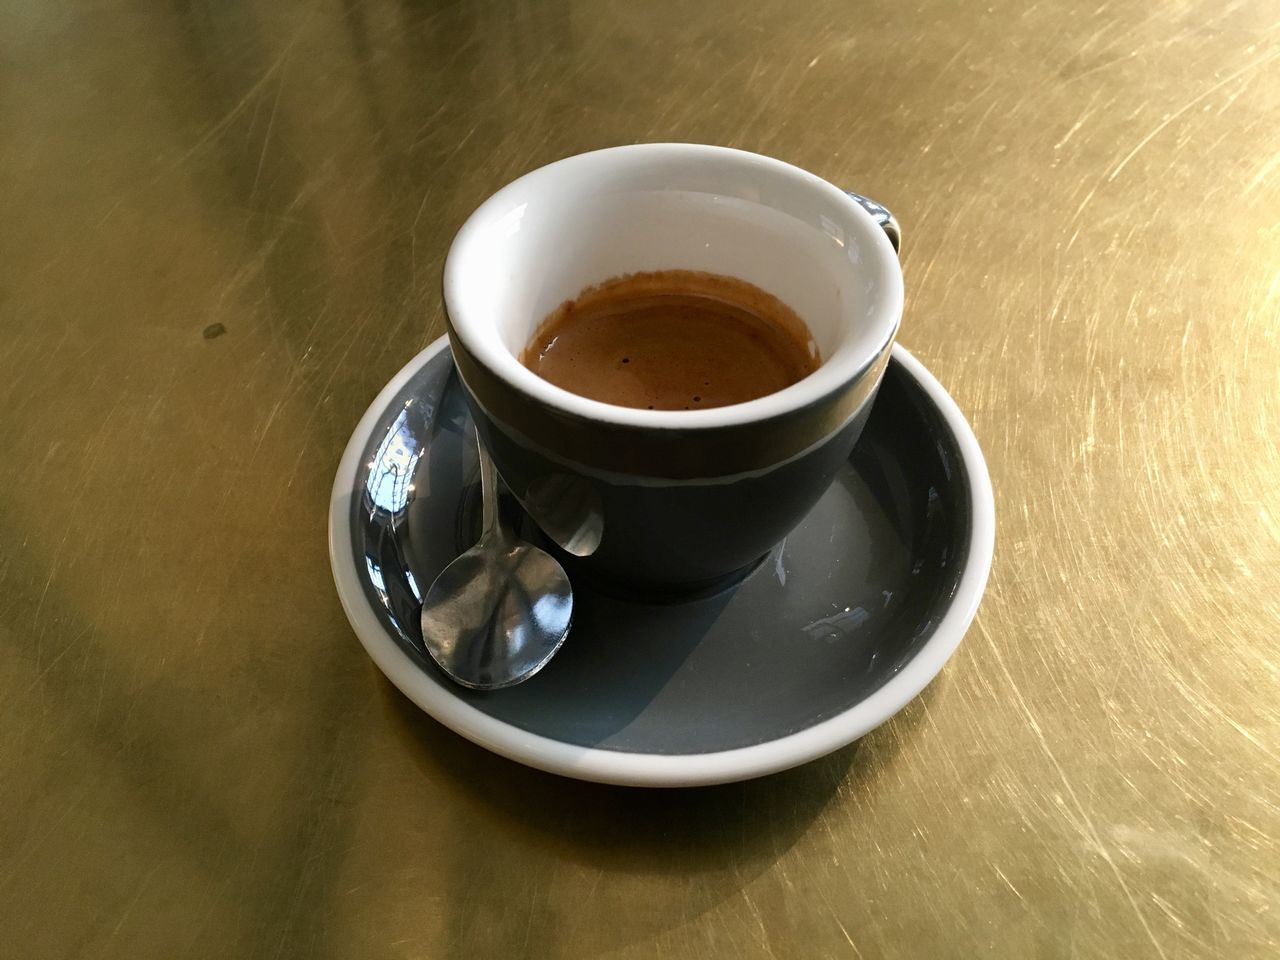 drink, refreshment, table, food and drink, saucer, coffee cup, high angle view, coffee - drink, no people, indoors, freshness, close-up, day